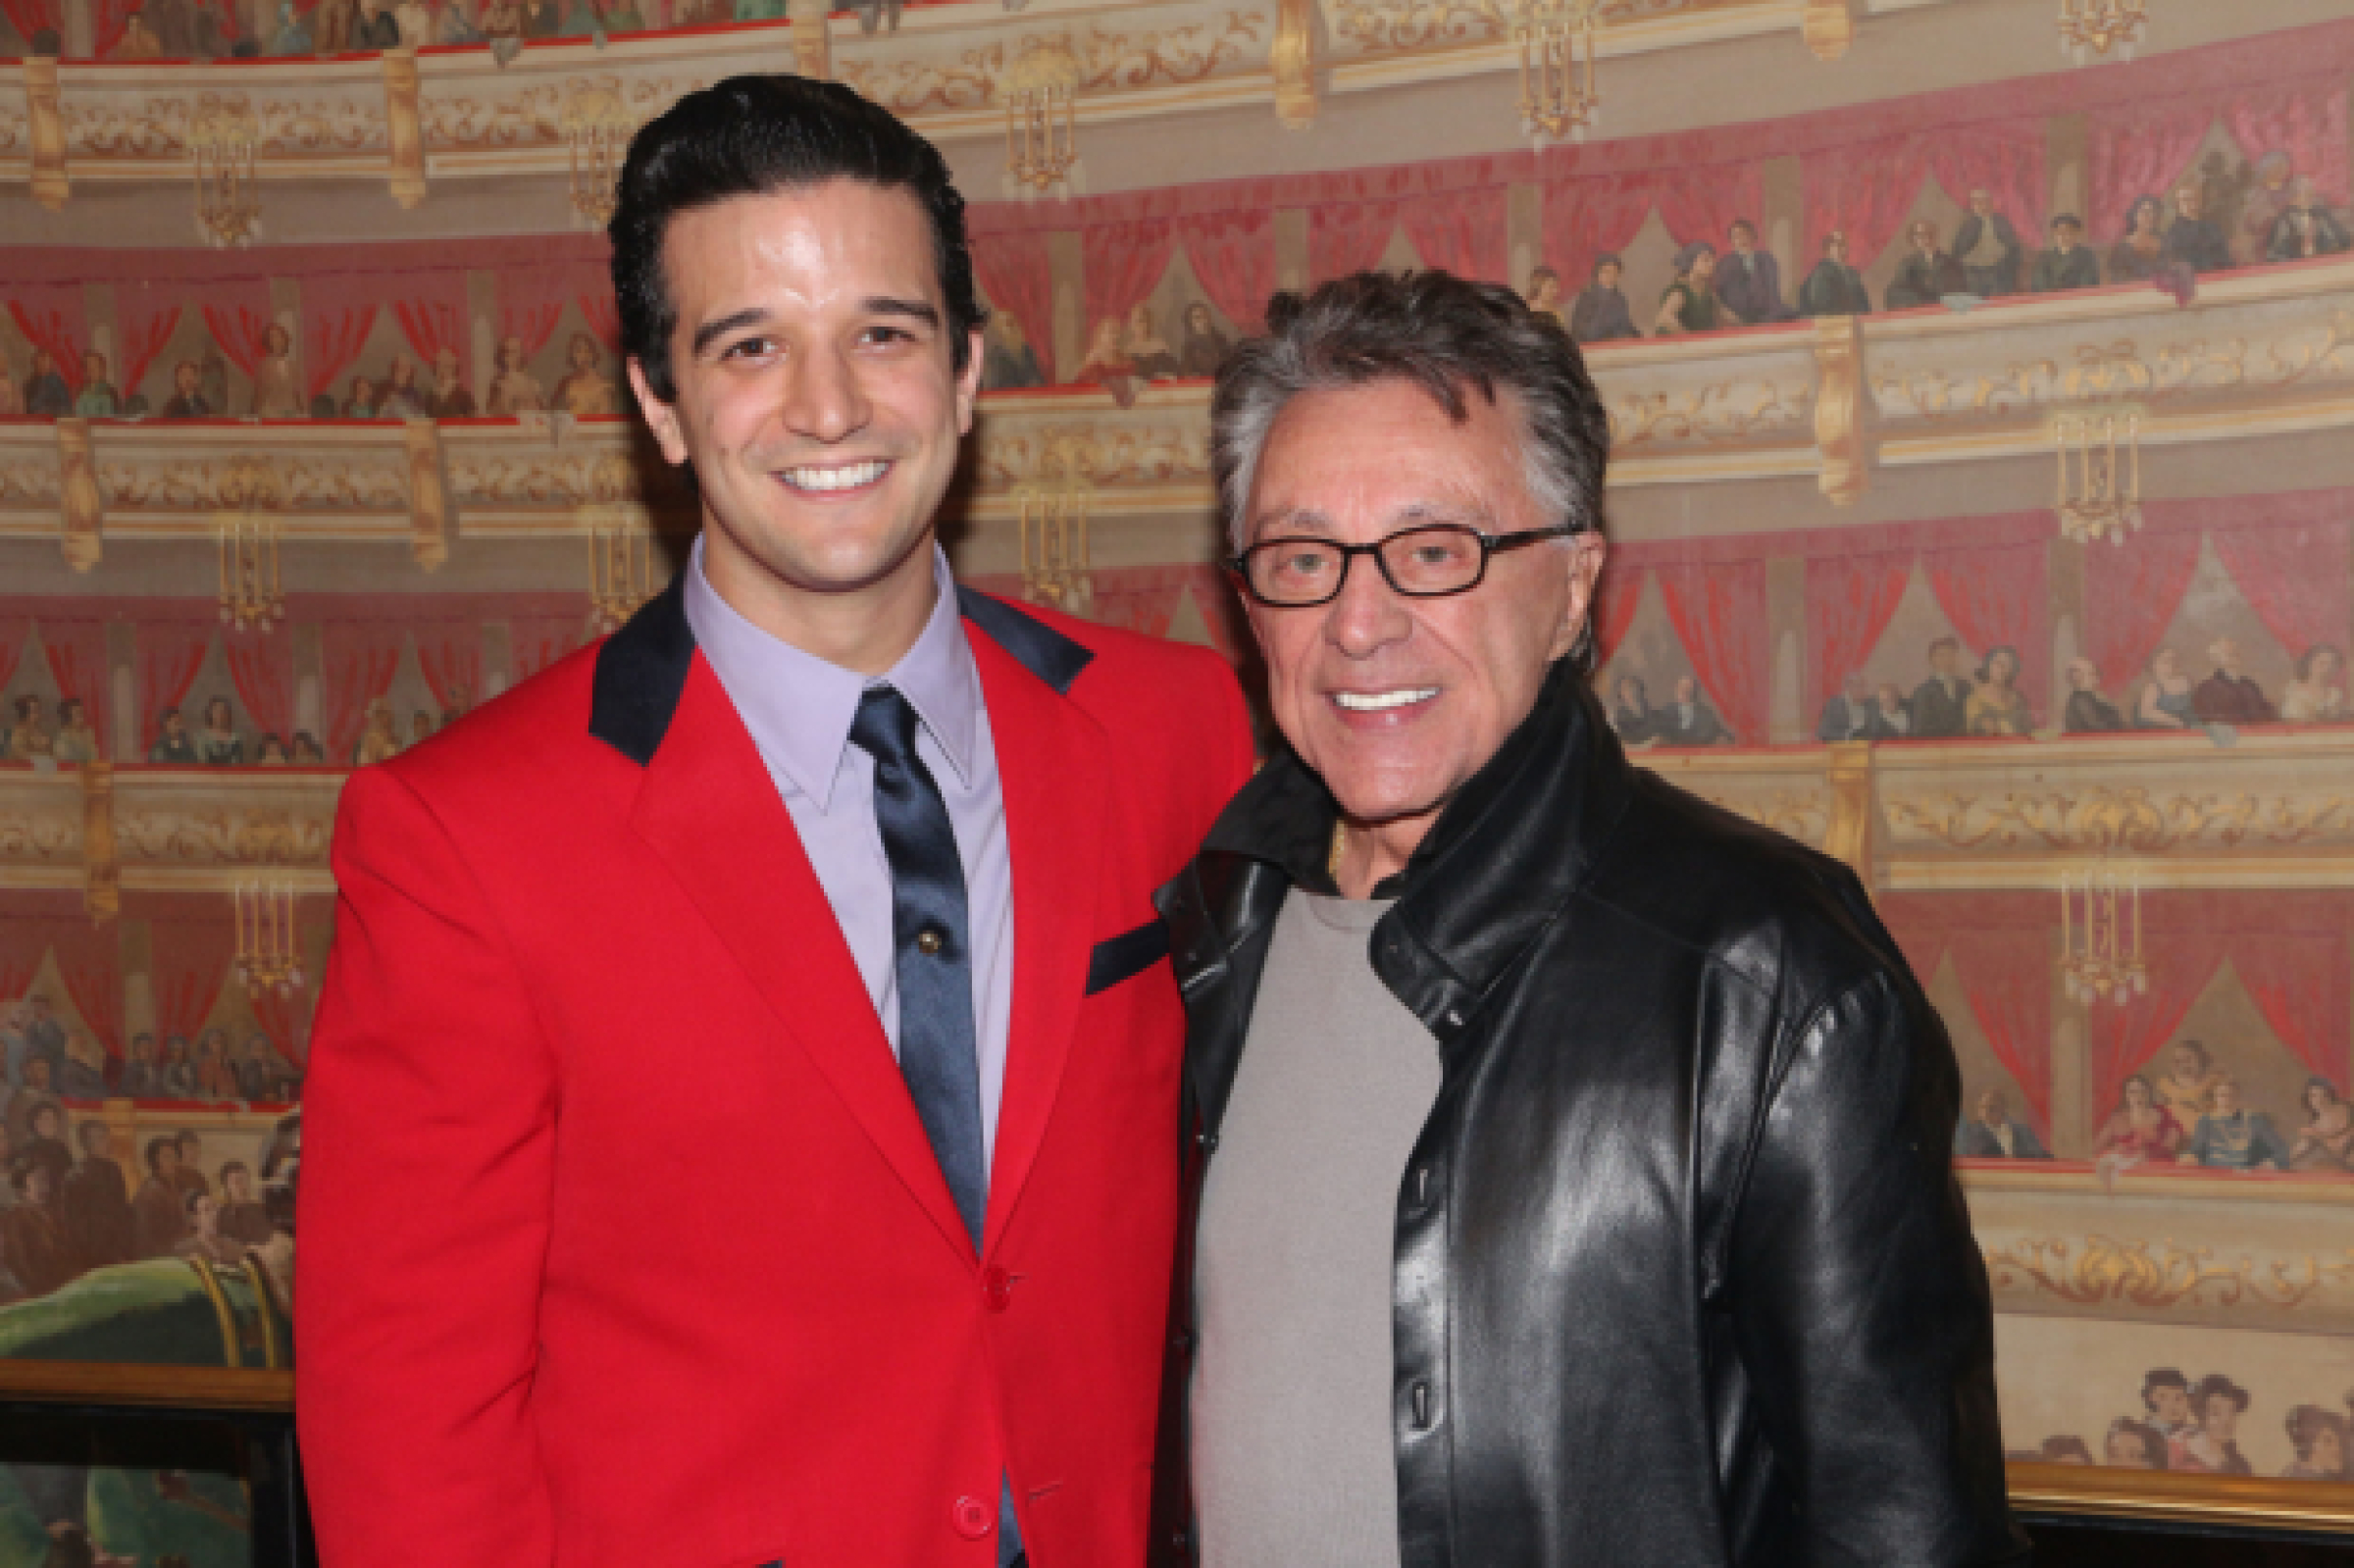 Jersey Boys Veteran Mark Ballas to Reprise Broadway Role in Los Angeles